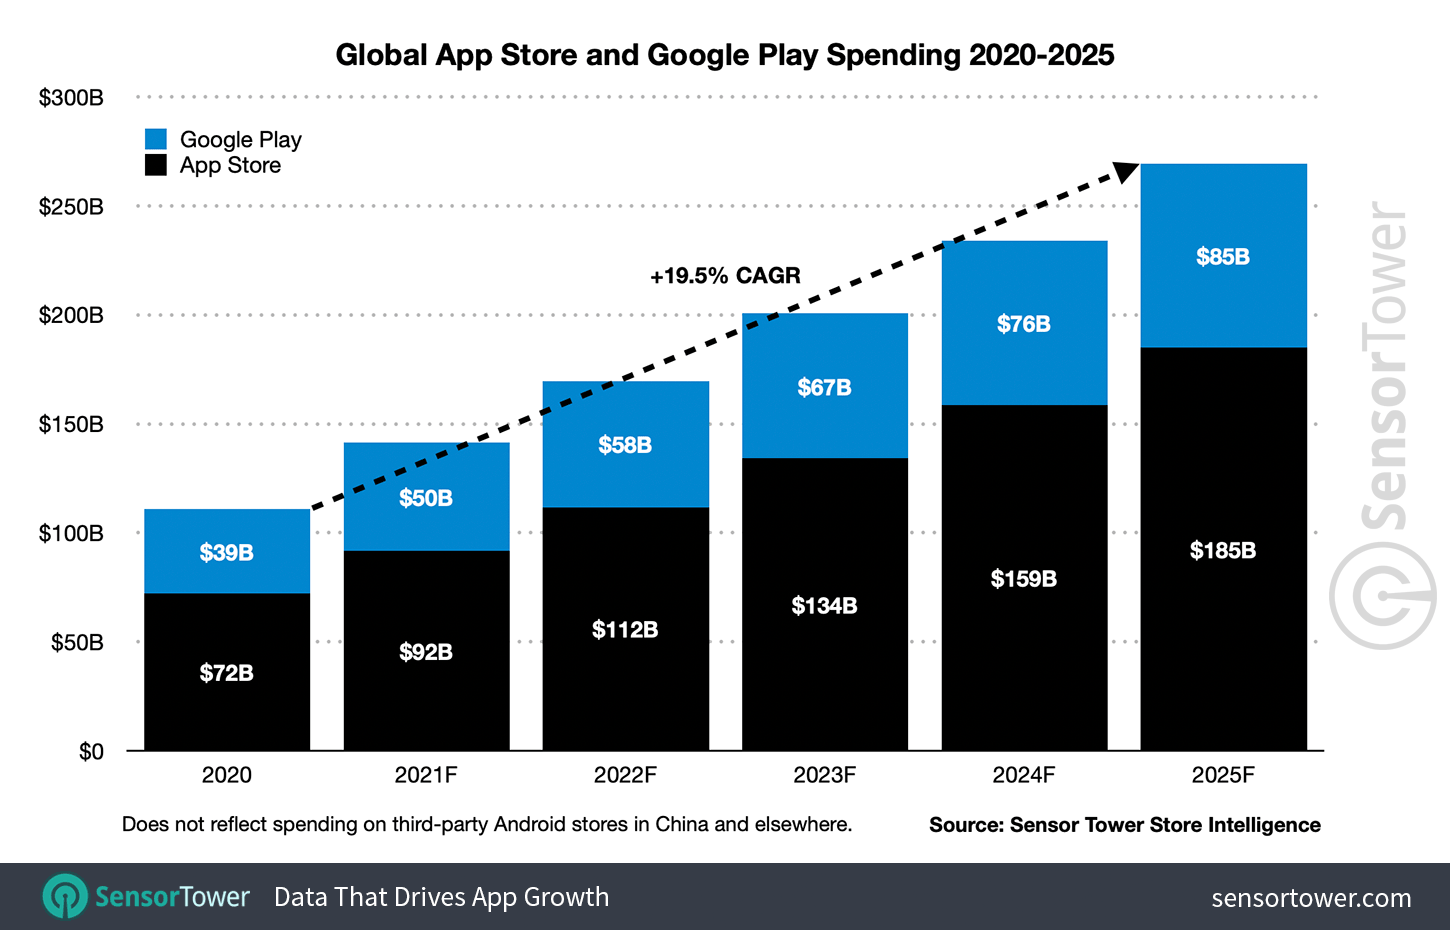 Global consumer spending will reach $270 billion on the App Store and Google Play by 2025